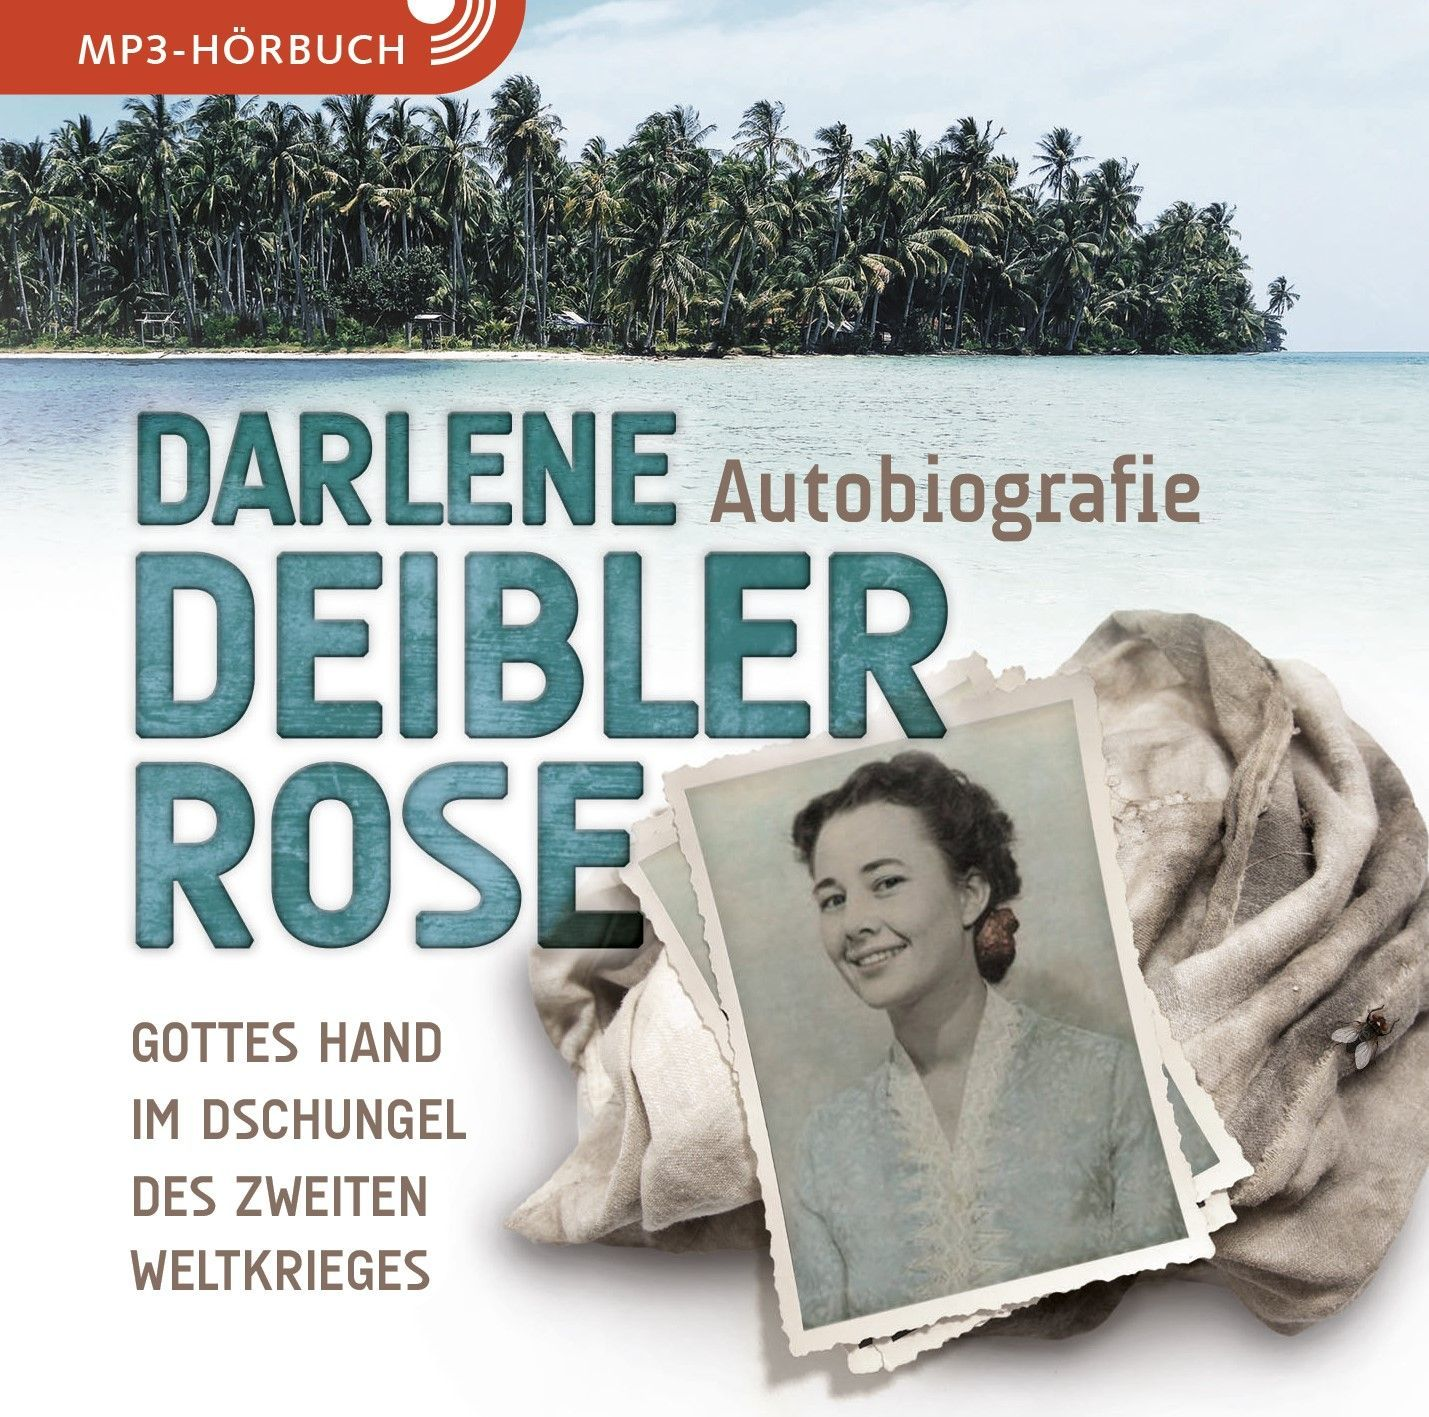 Darlene Deibler Rose - Hörbuch (MP3-CD)